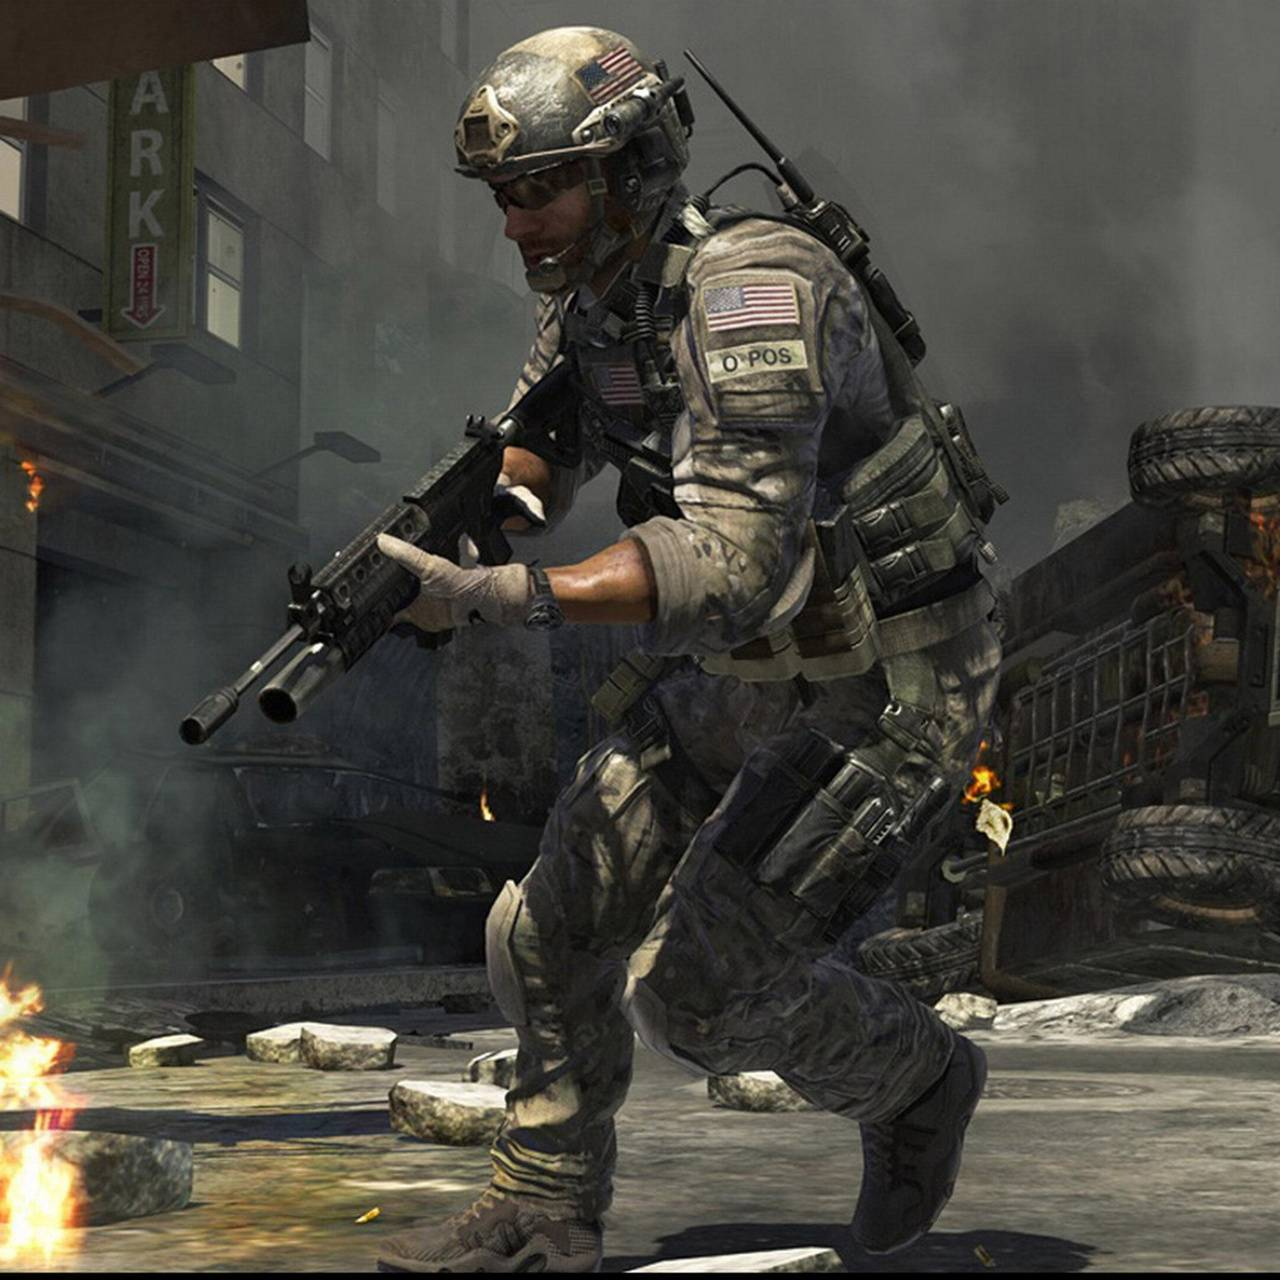 Call of Duty Wallpaper Wallpapers Browse